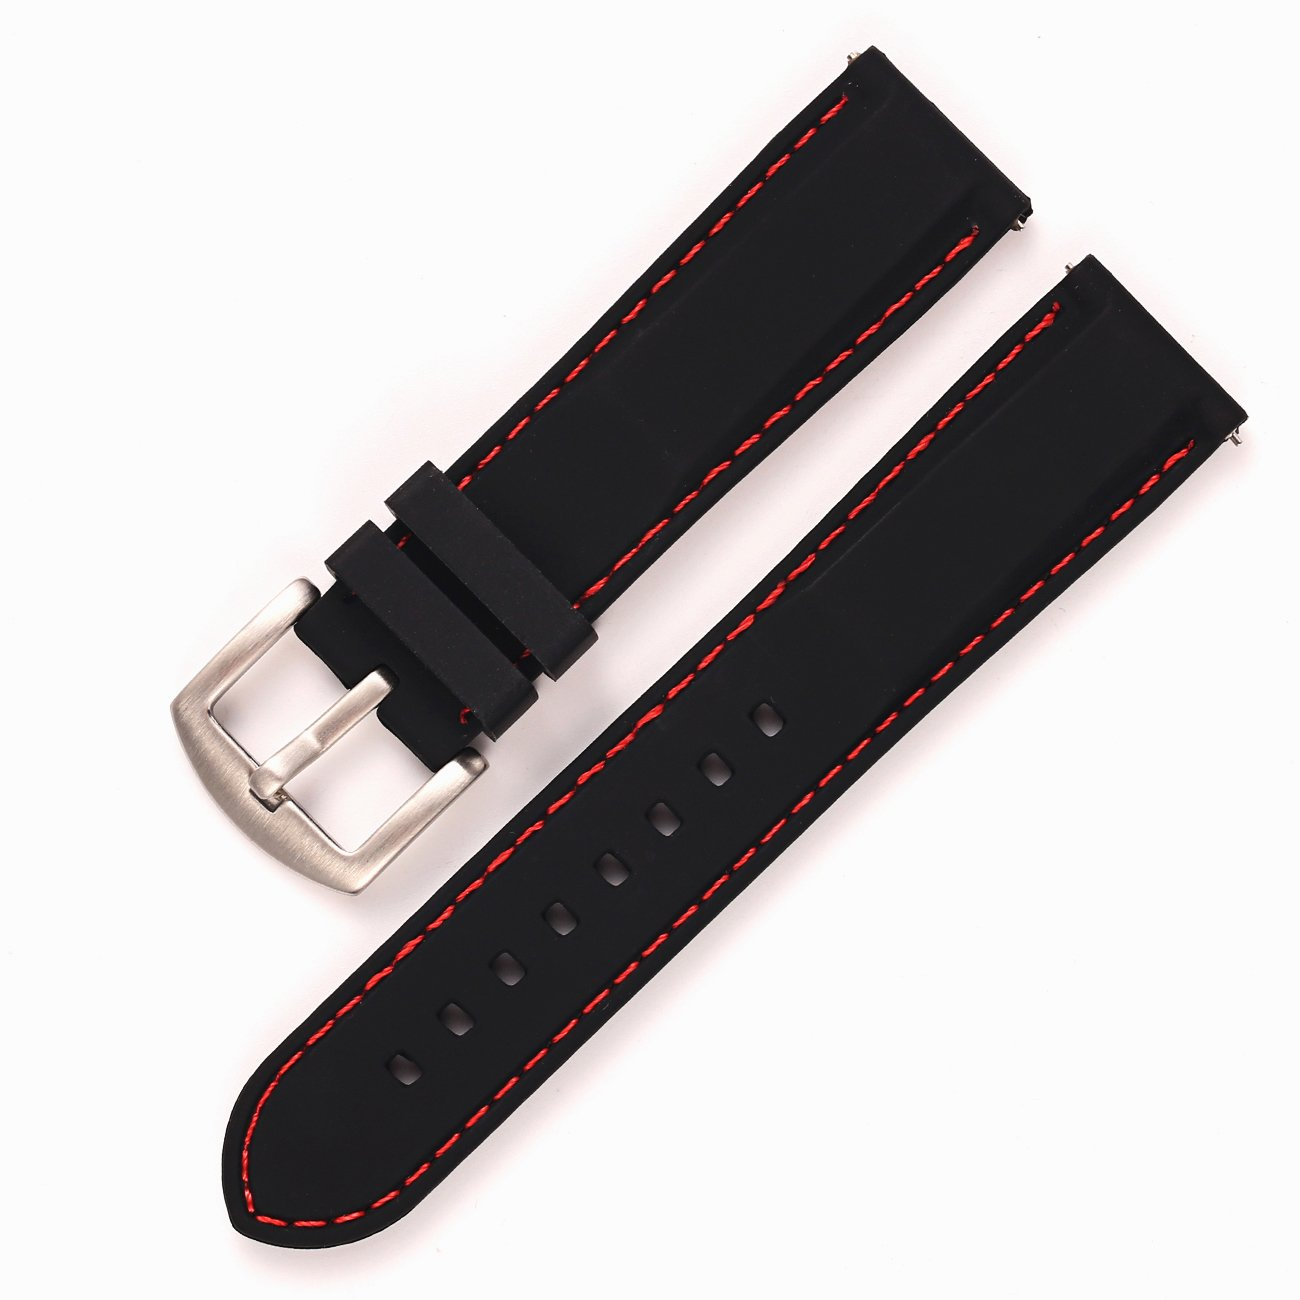 22mm Quick Release Replacement Watch Bands for Men - Premium Silicone Rubber Watch Bands Black(Red Stitching Silver Buckle) by Carty (Image #2)